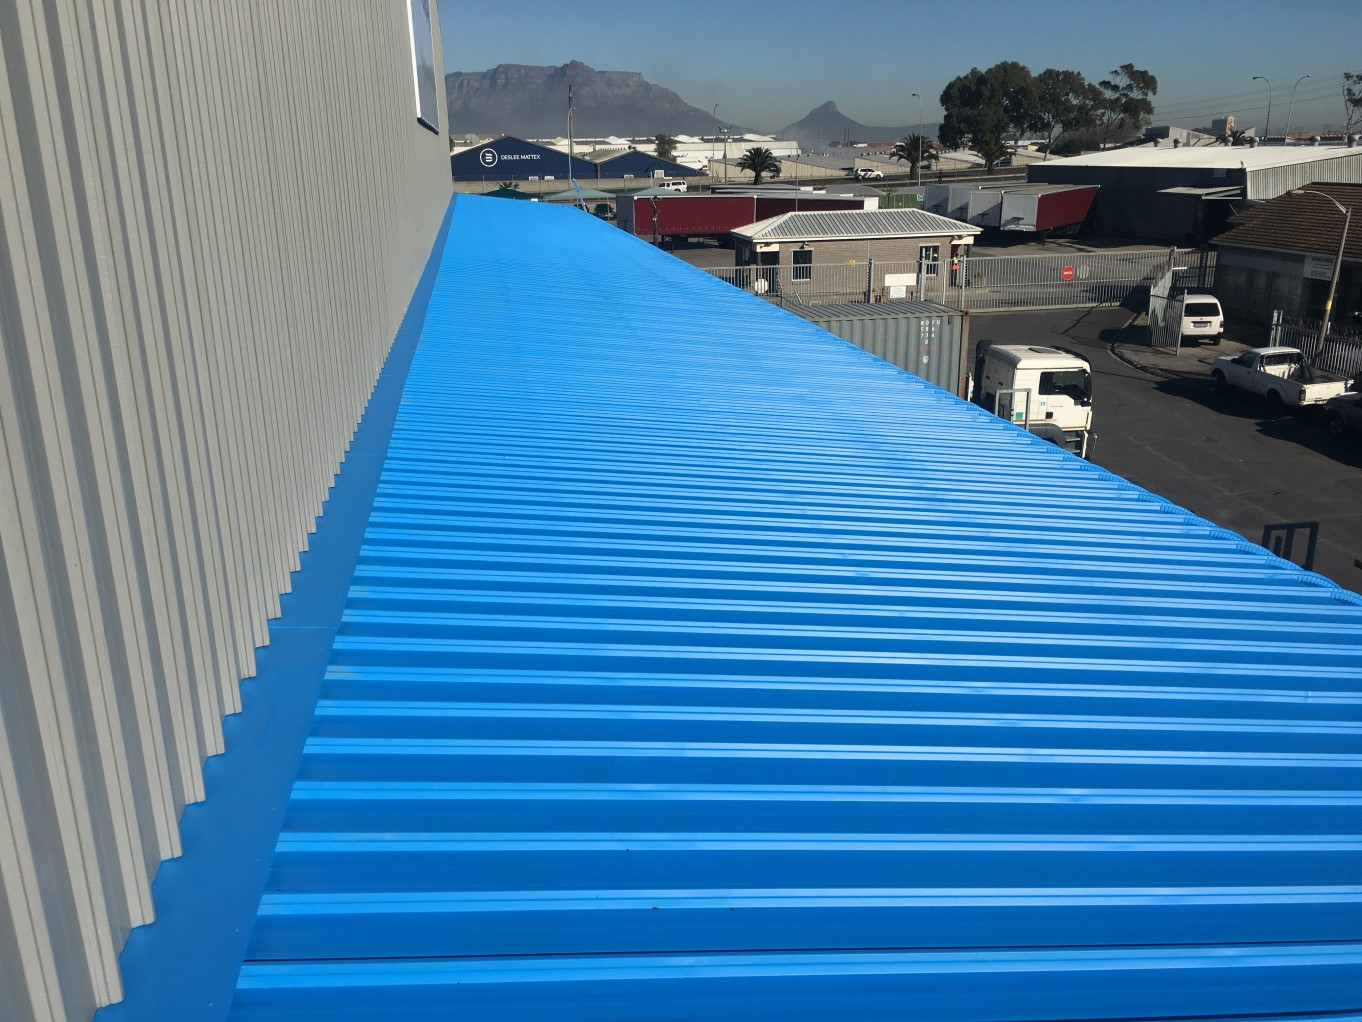 Roofing and Airless spray Painting Grandmark